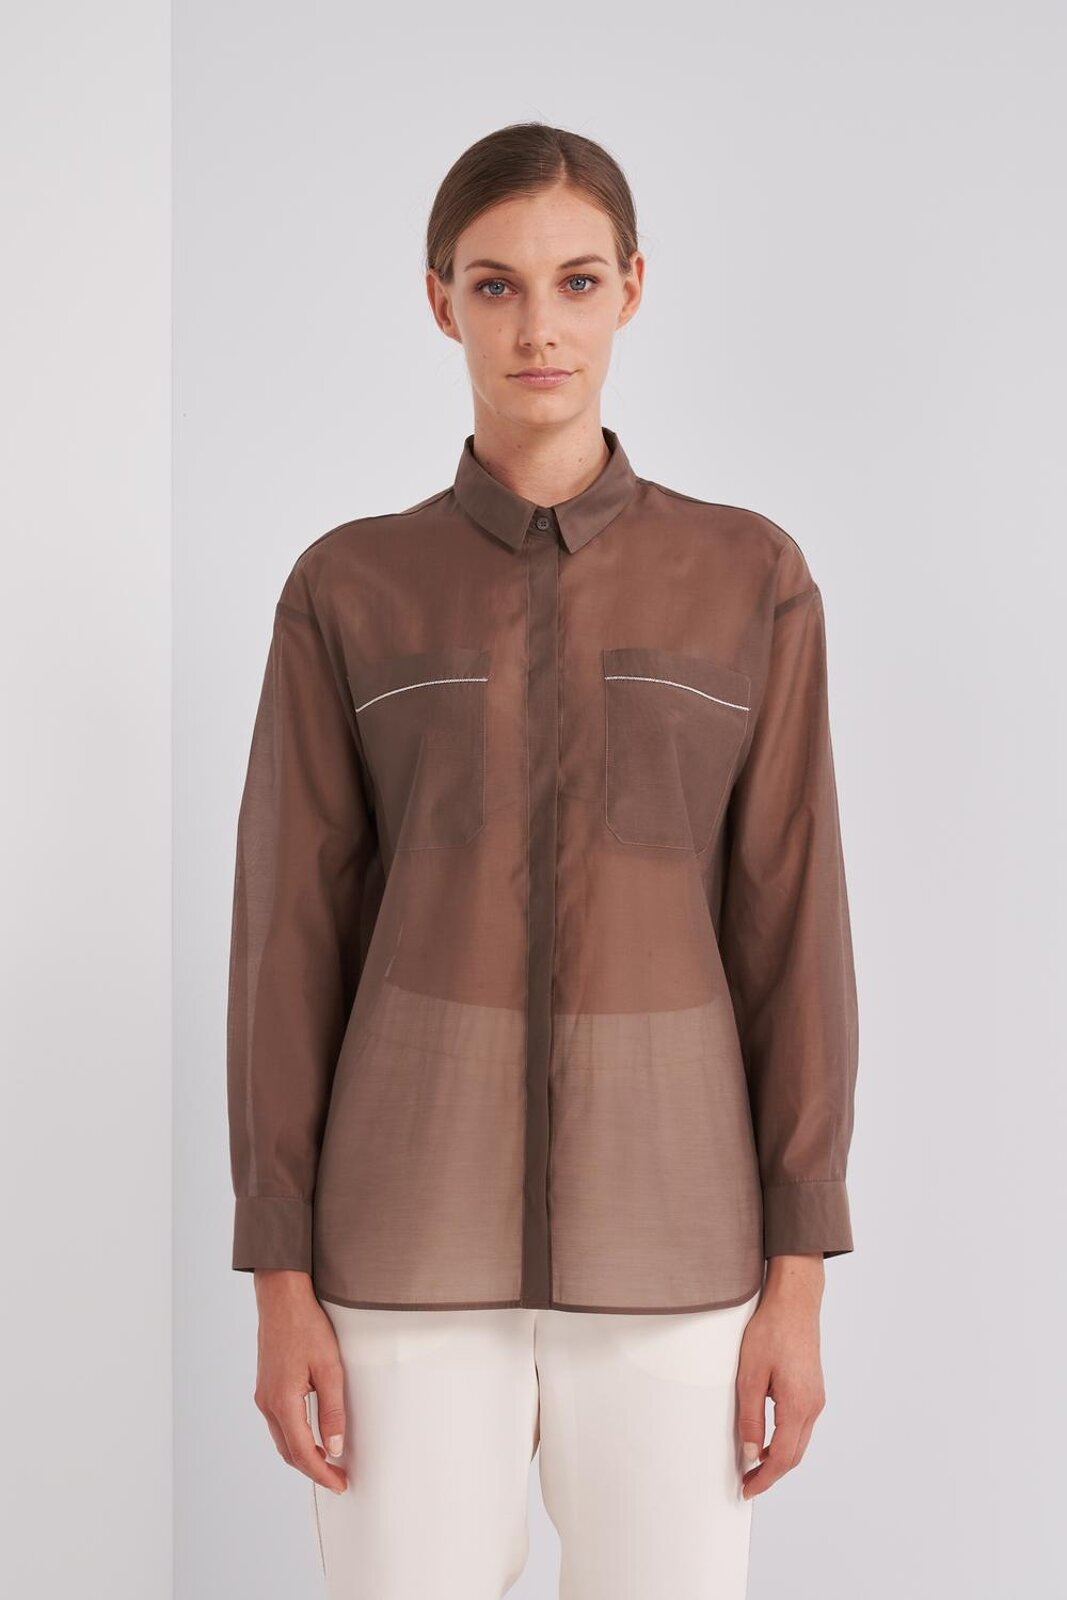 Long-sleeved shirt in fluid cotton and silk fabric, slightly transparent. Two 'Patch' Pockets On The Chest With Metallic Decorations, Concealed Button Closure. Over fit. - Peserico